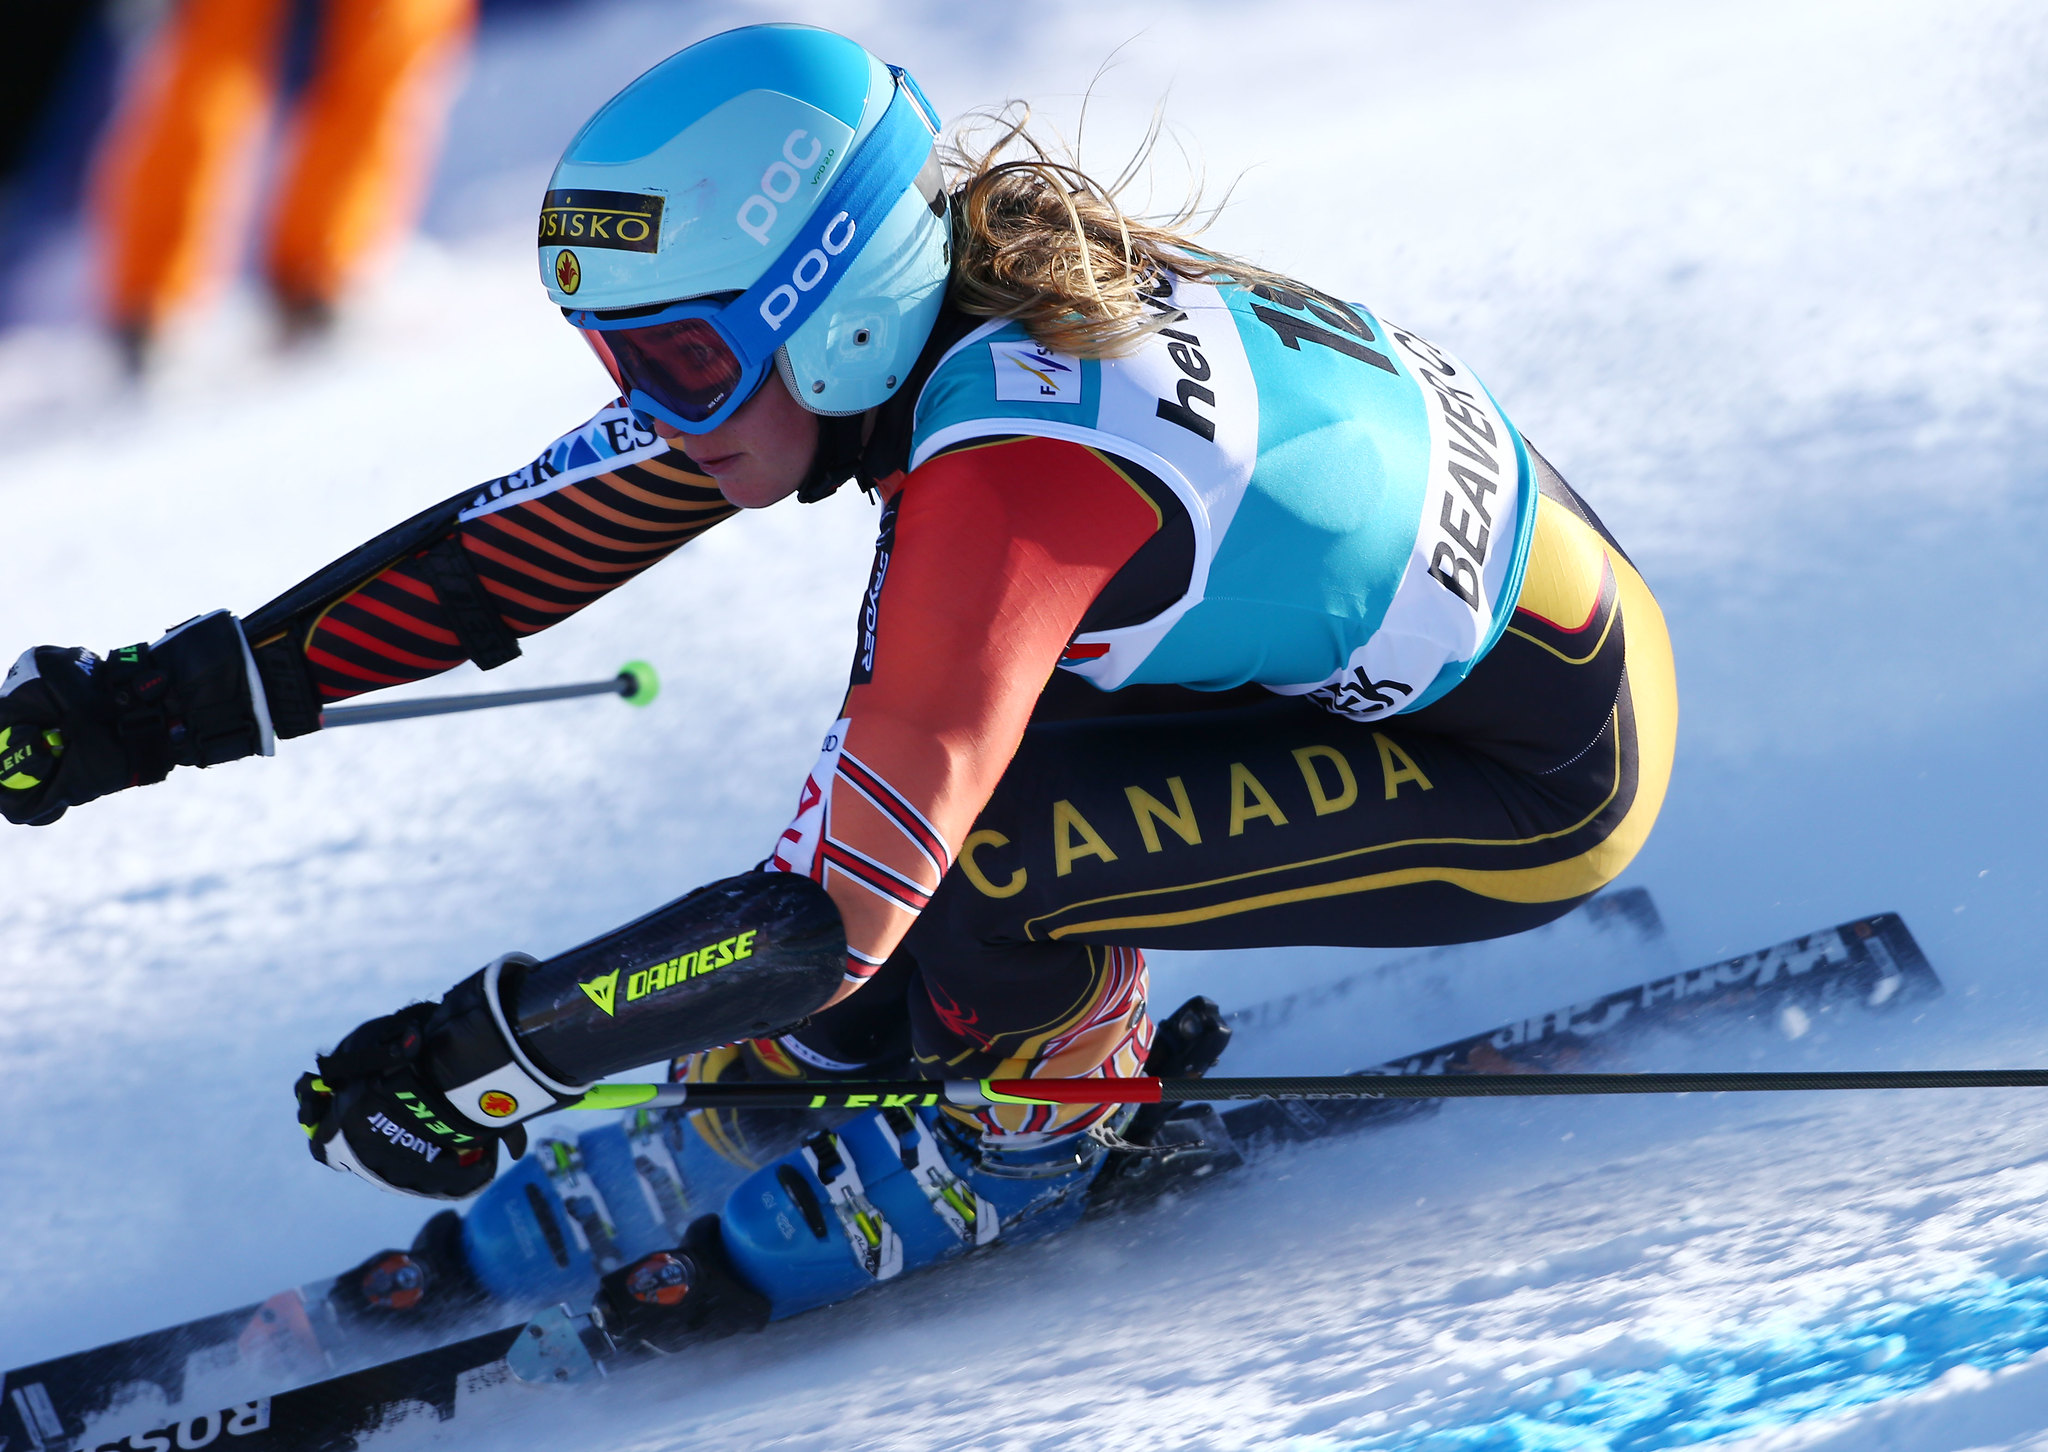 Gagnon races her way to a 13th place finish in the giant slalom at the FIS Alpine World Cup in Beaver Creek, U.S.